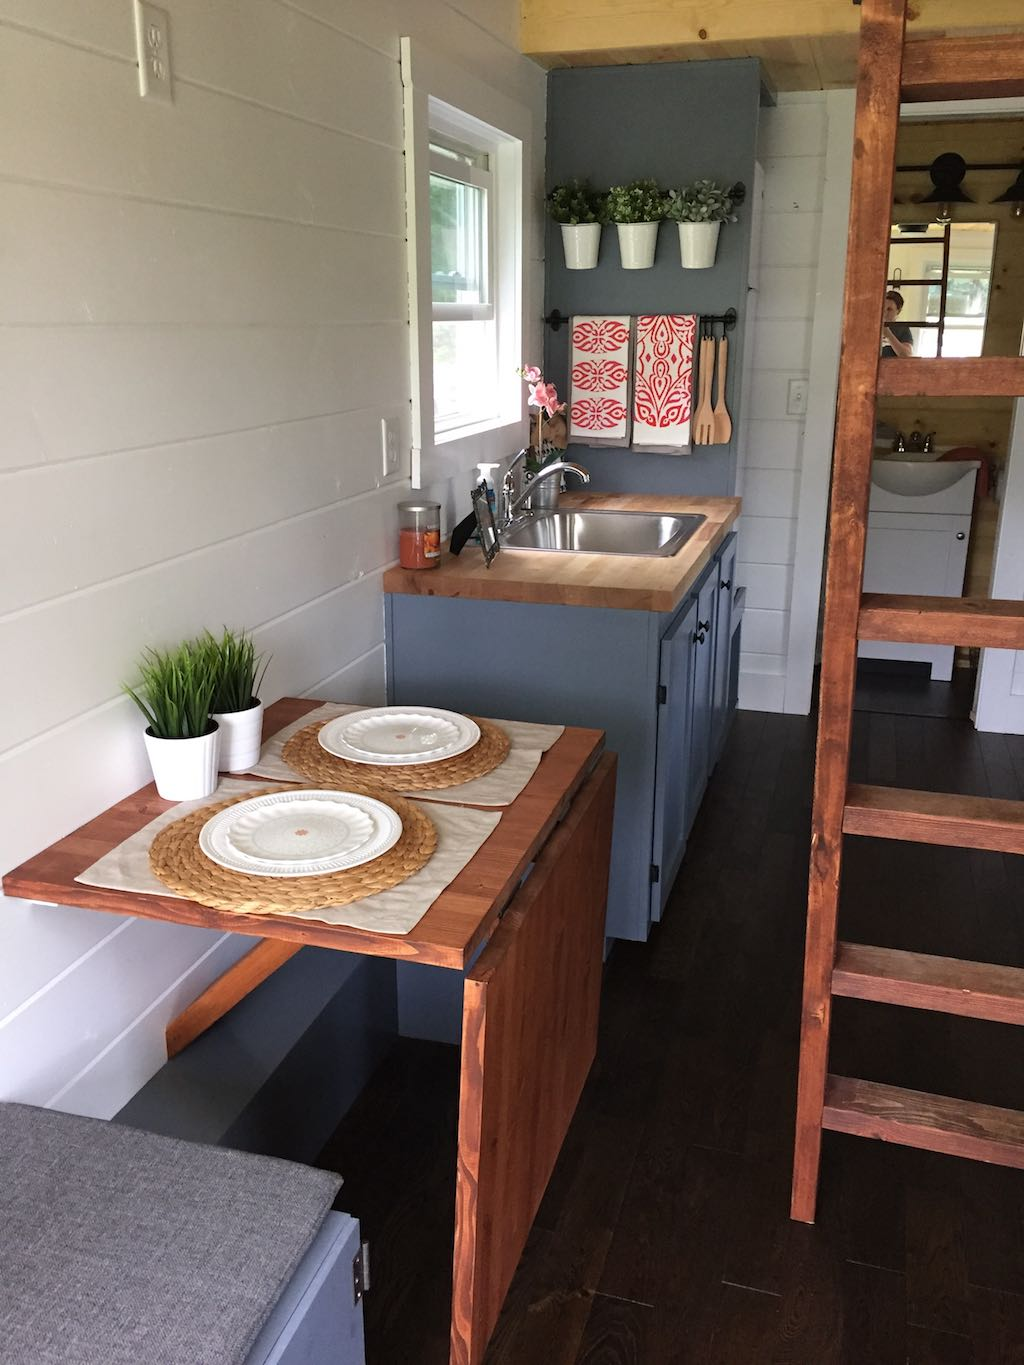 wanigan-burrow-tiny-homes-3